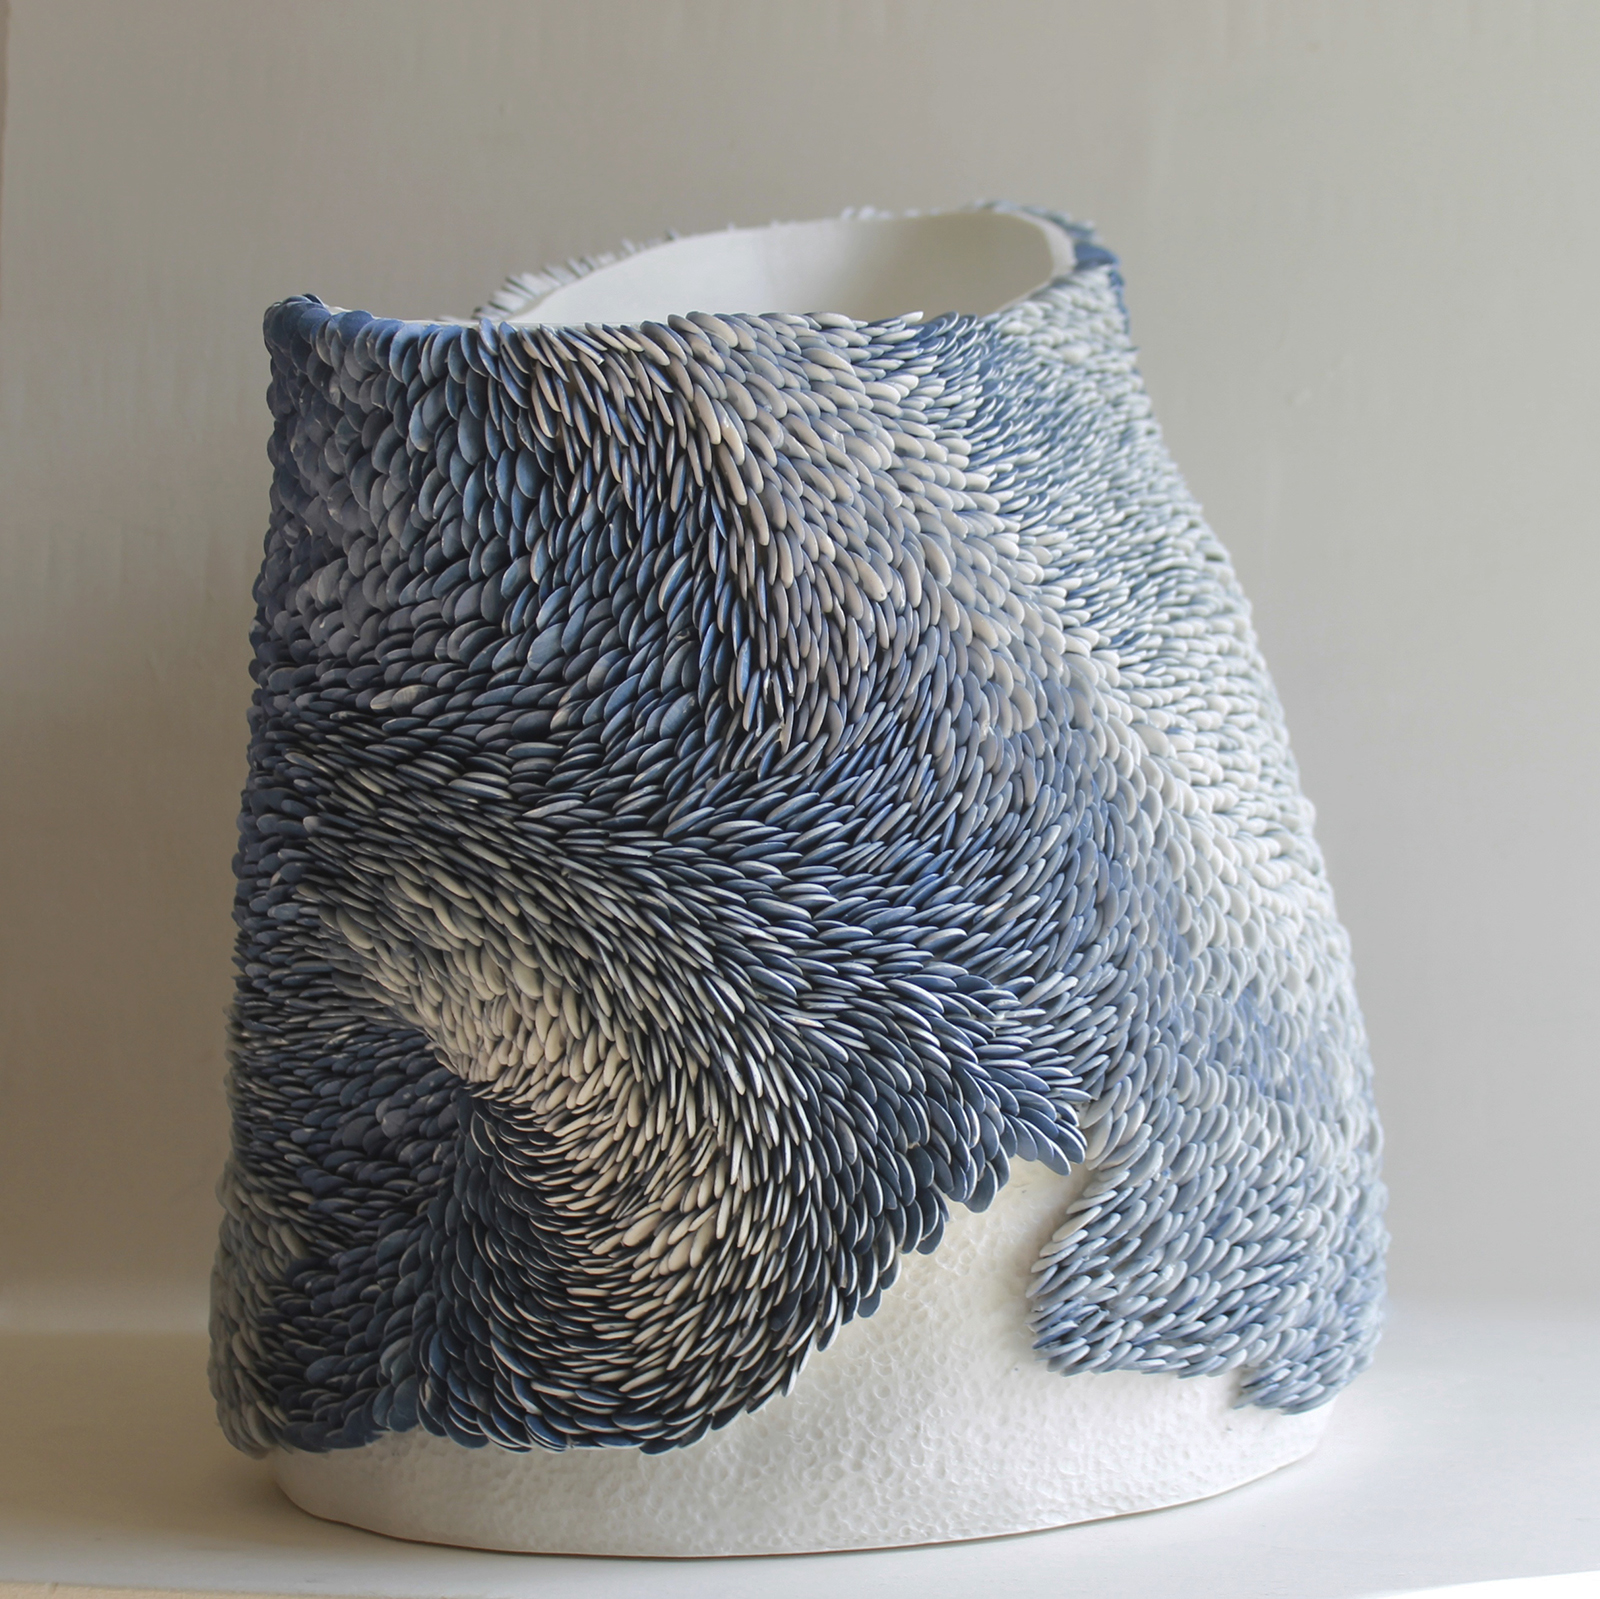 White-blue-Flow-pot-purchased-for-SMAG-by-Contemporary-Art-Society.jpg